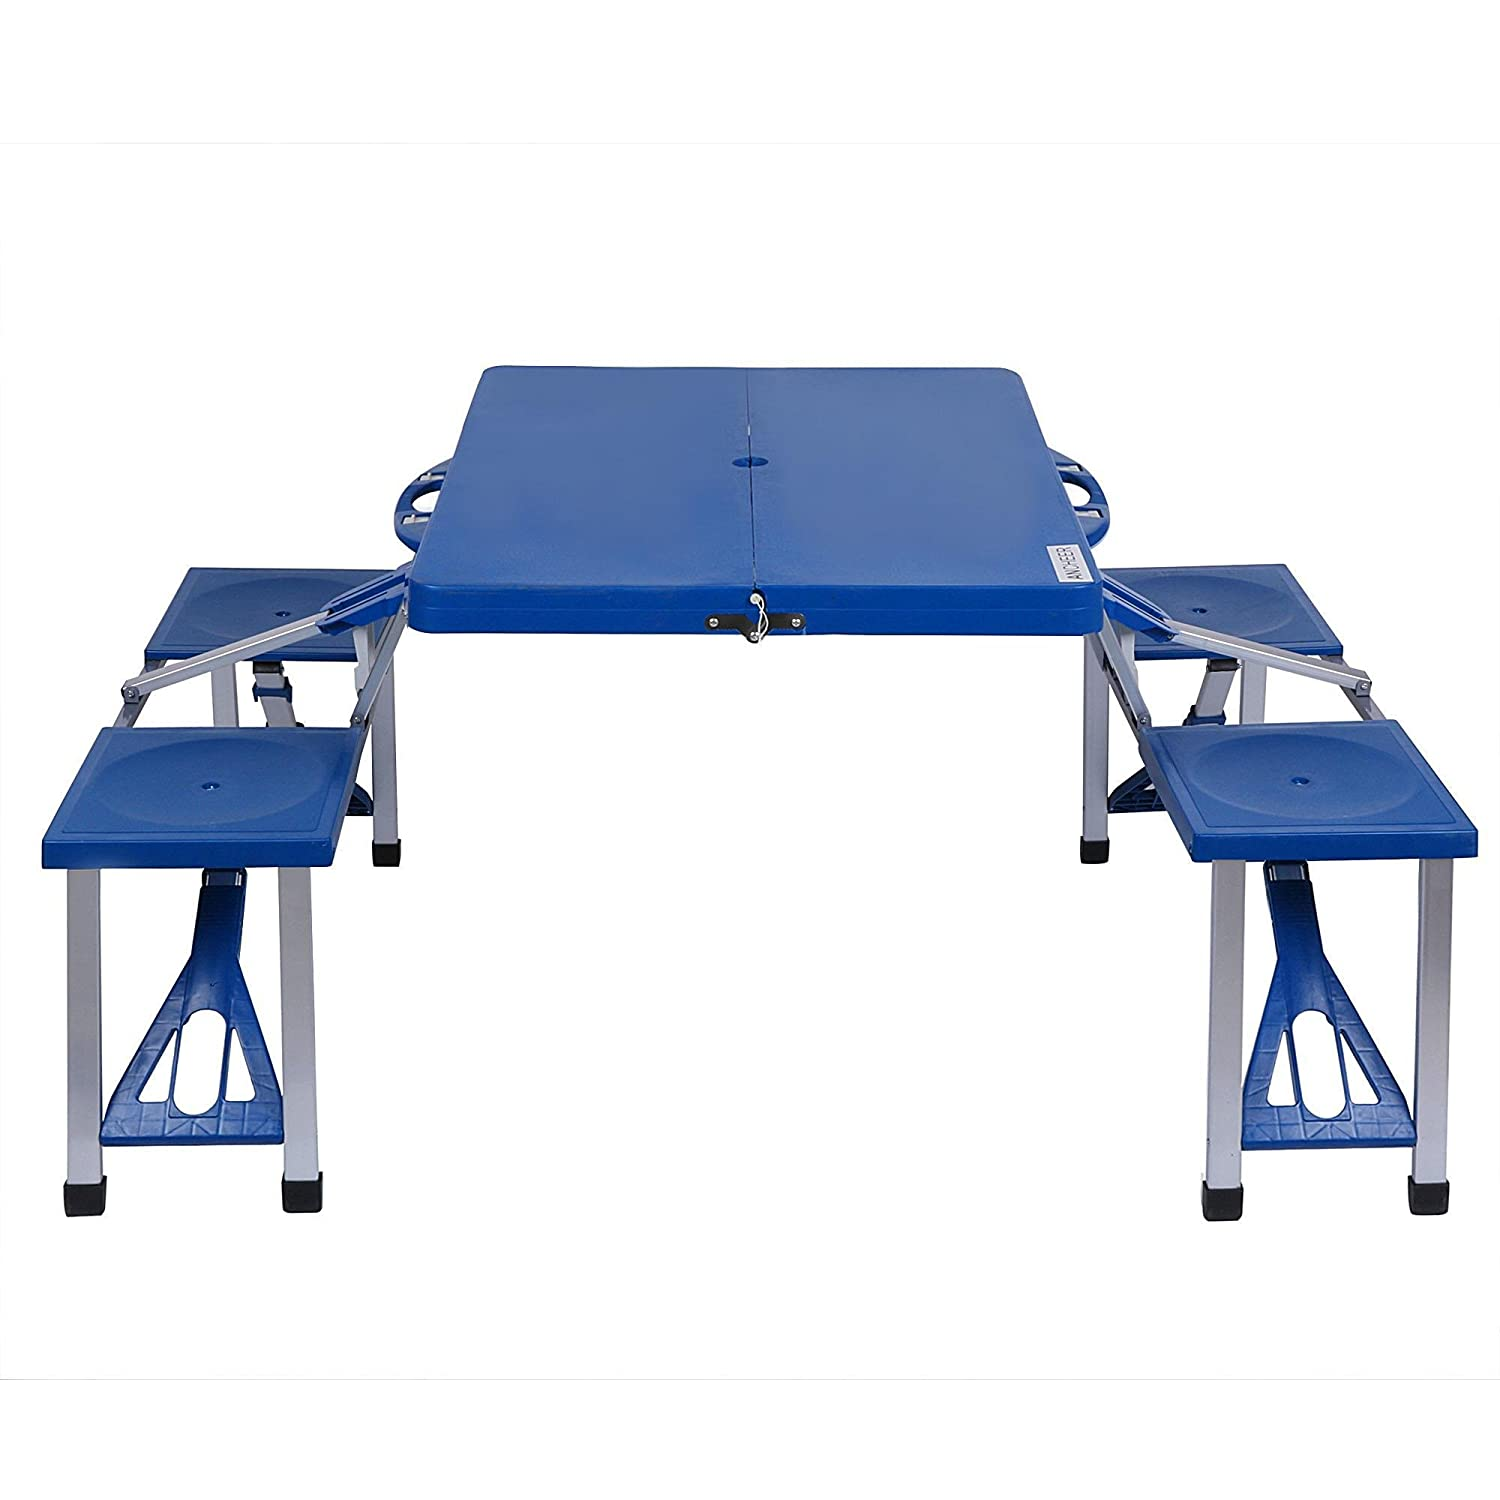 Hindom Kids Collapsible Portable Outdoor Plastic Camp Suitcase Picnic Table With 4 Seats, Folding Table and Benches for Garden Yard, Camping BBQ, Hiking, Blue(US Stock)